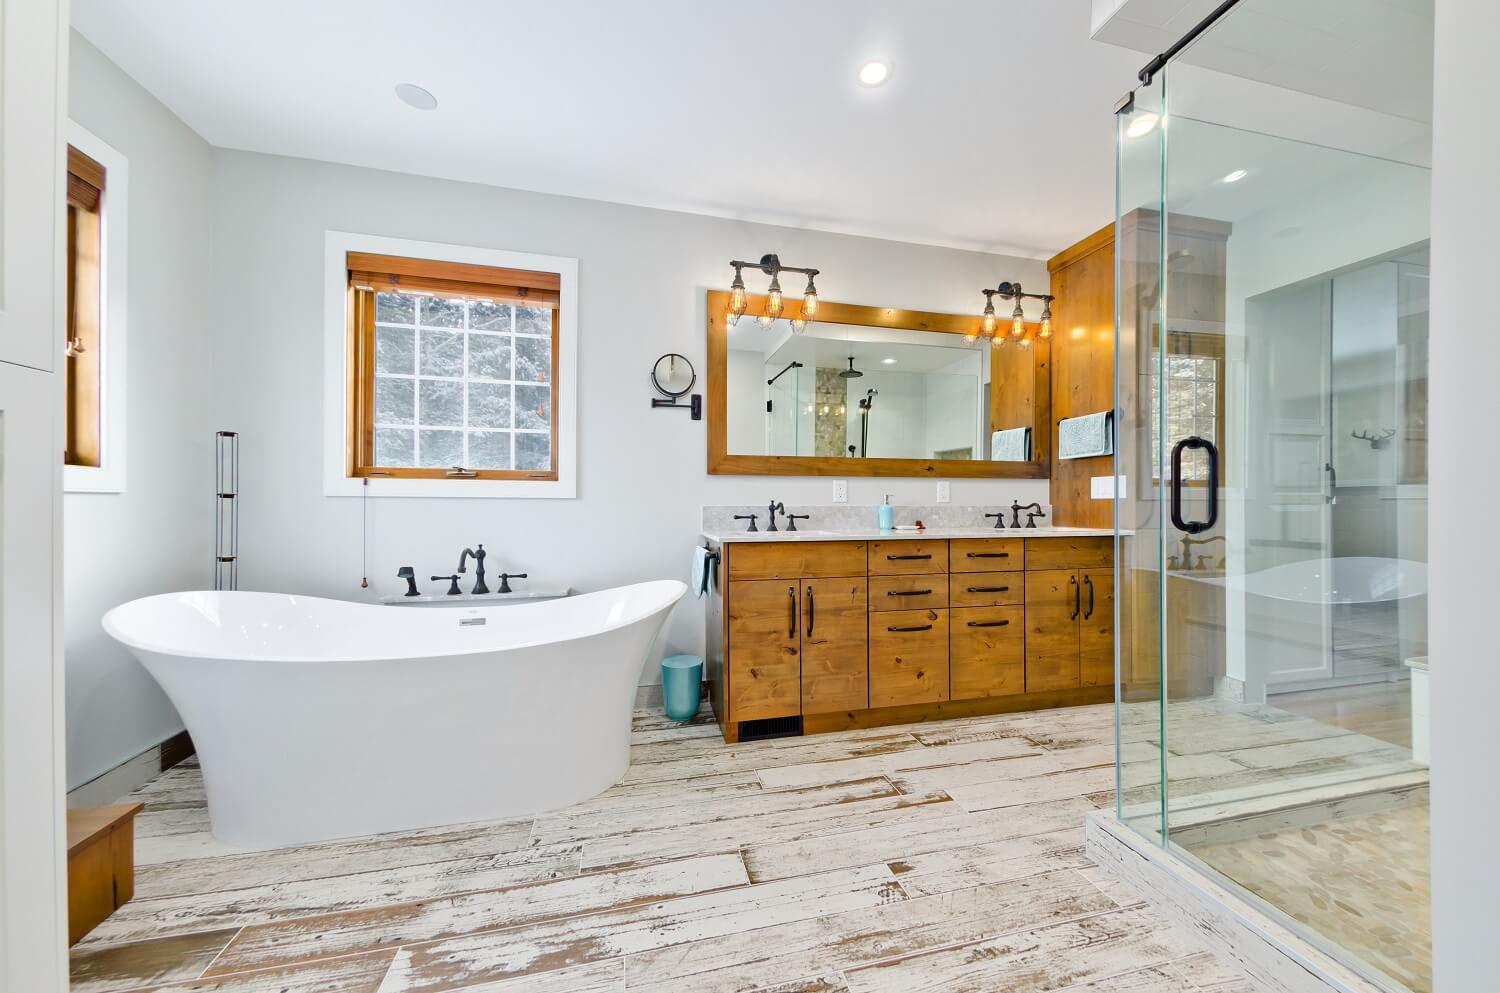 Rustic Contemporary Blended Bathroom Renovation in Calgary by Interiors with Elegance